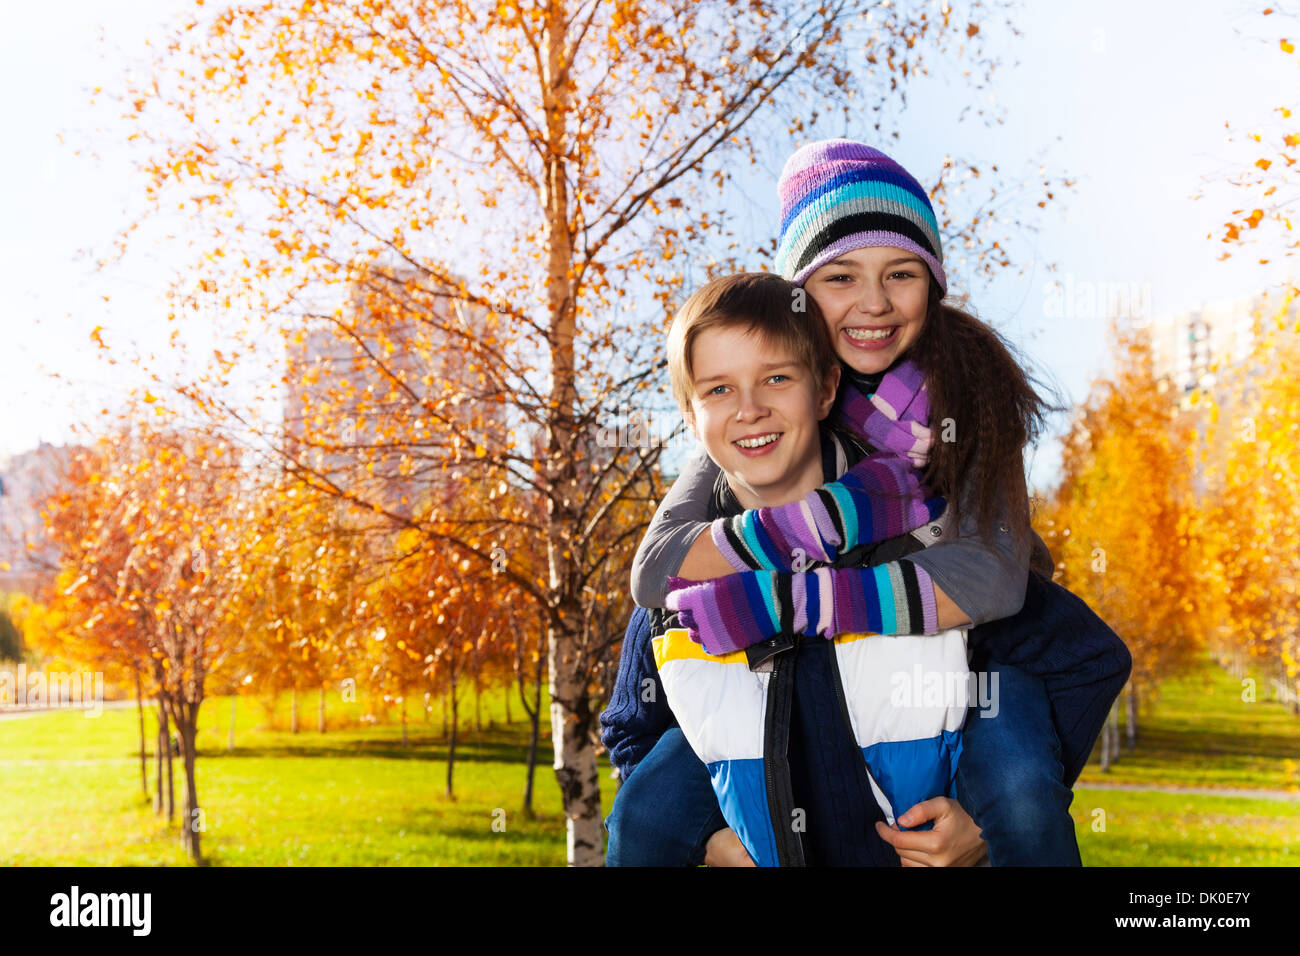 45cb0a155d3b Kids Playing Park Happy 10 Years Stock Photos   Kids Playing Park ...